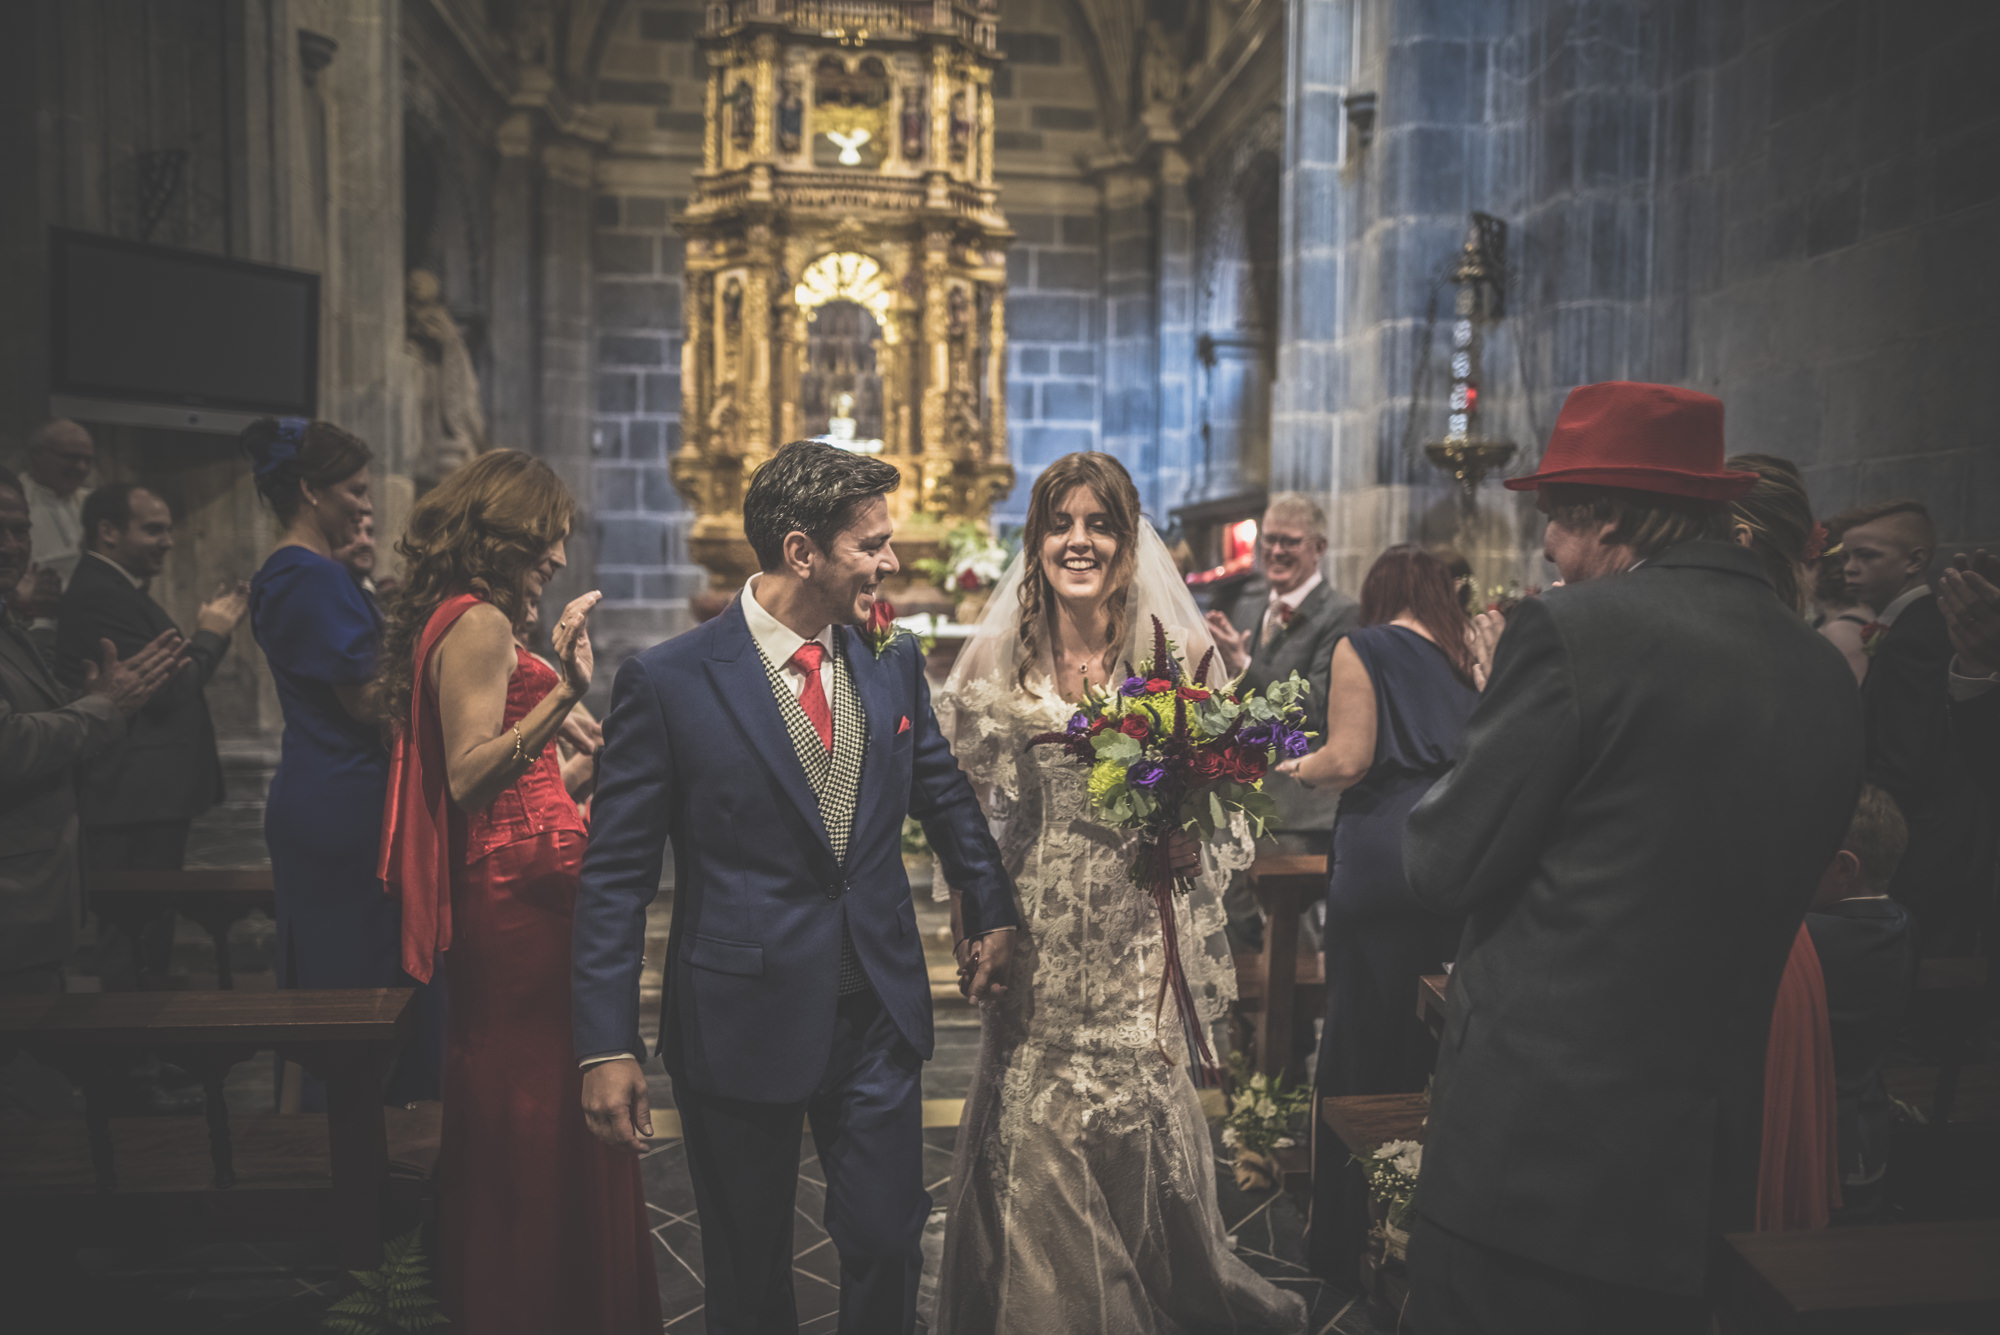 Amy-and-Andres-destination-wedding-in-Potes-Spain-Manu-Mendoza-Wedding-Photography-327.jpg